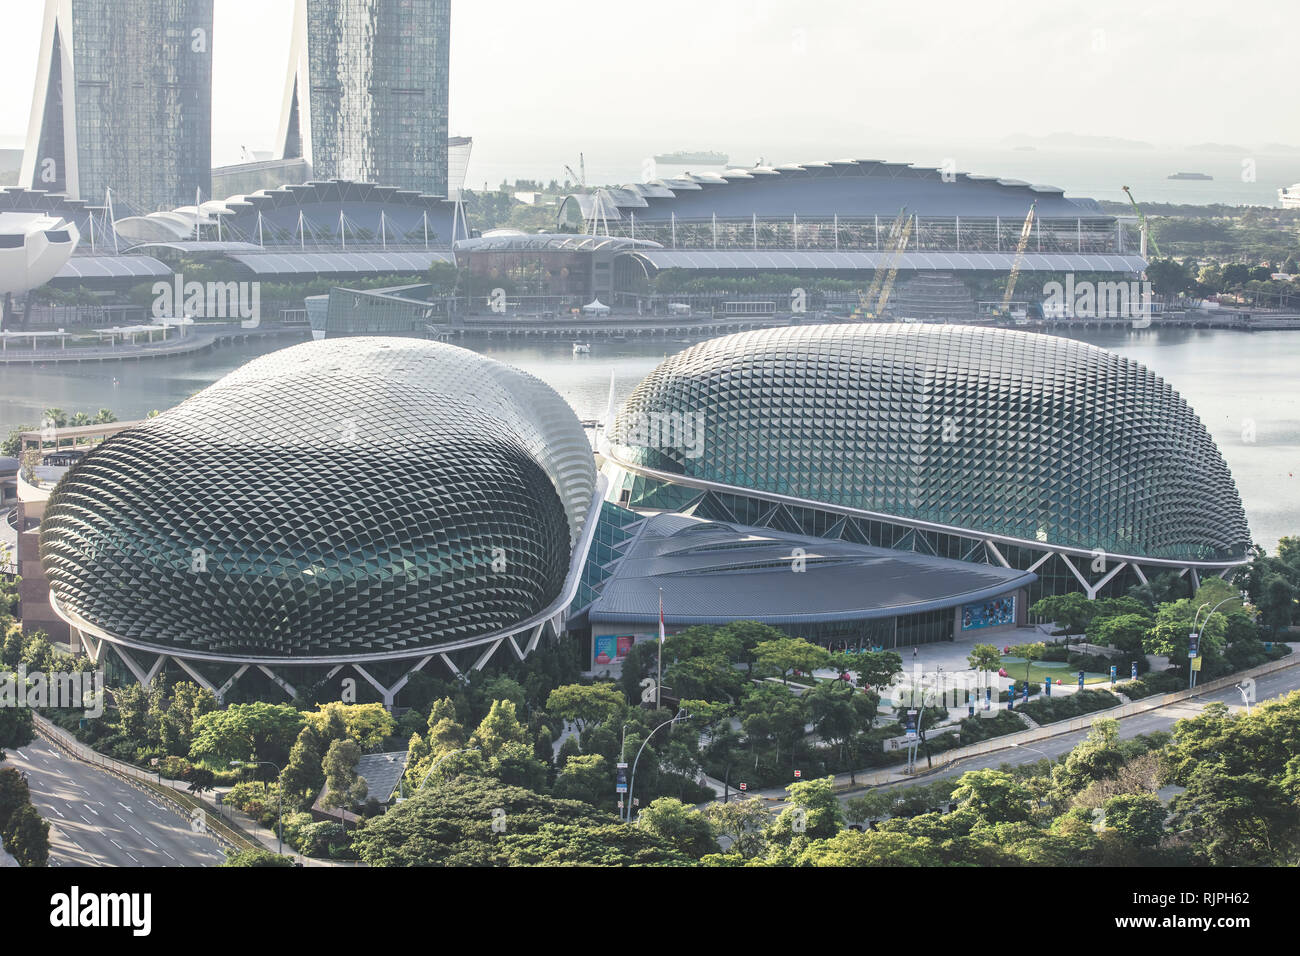 Singapore esplanade theatres on the bay architectural close up details aerial view in elegant retro muted colours - Stock Image